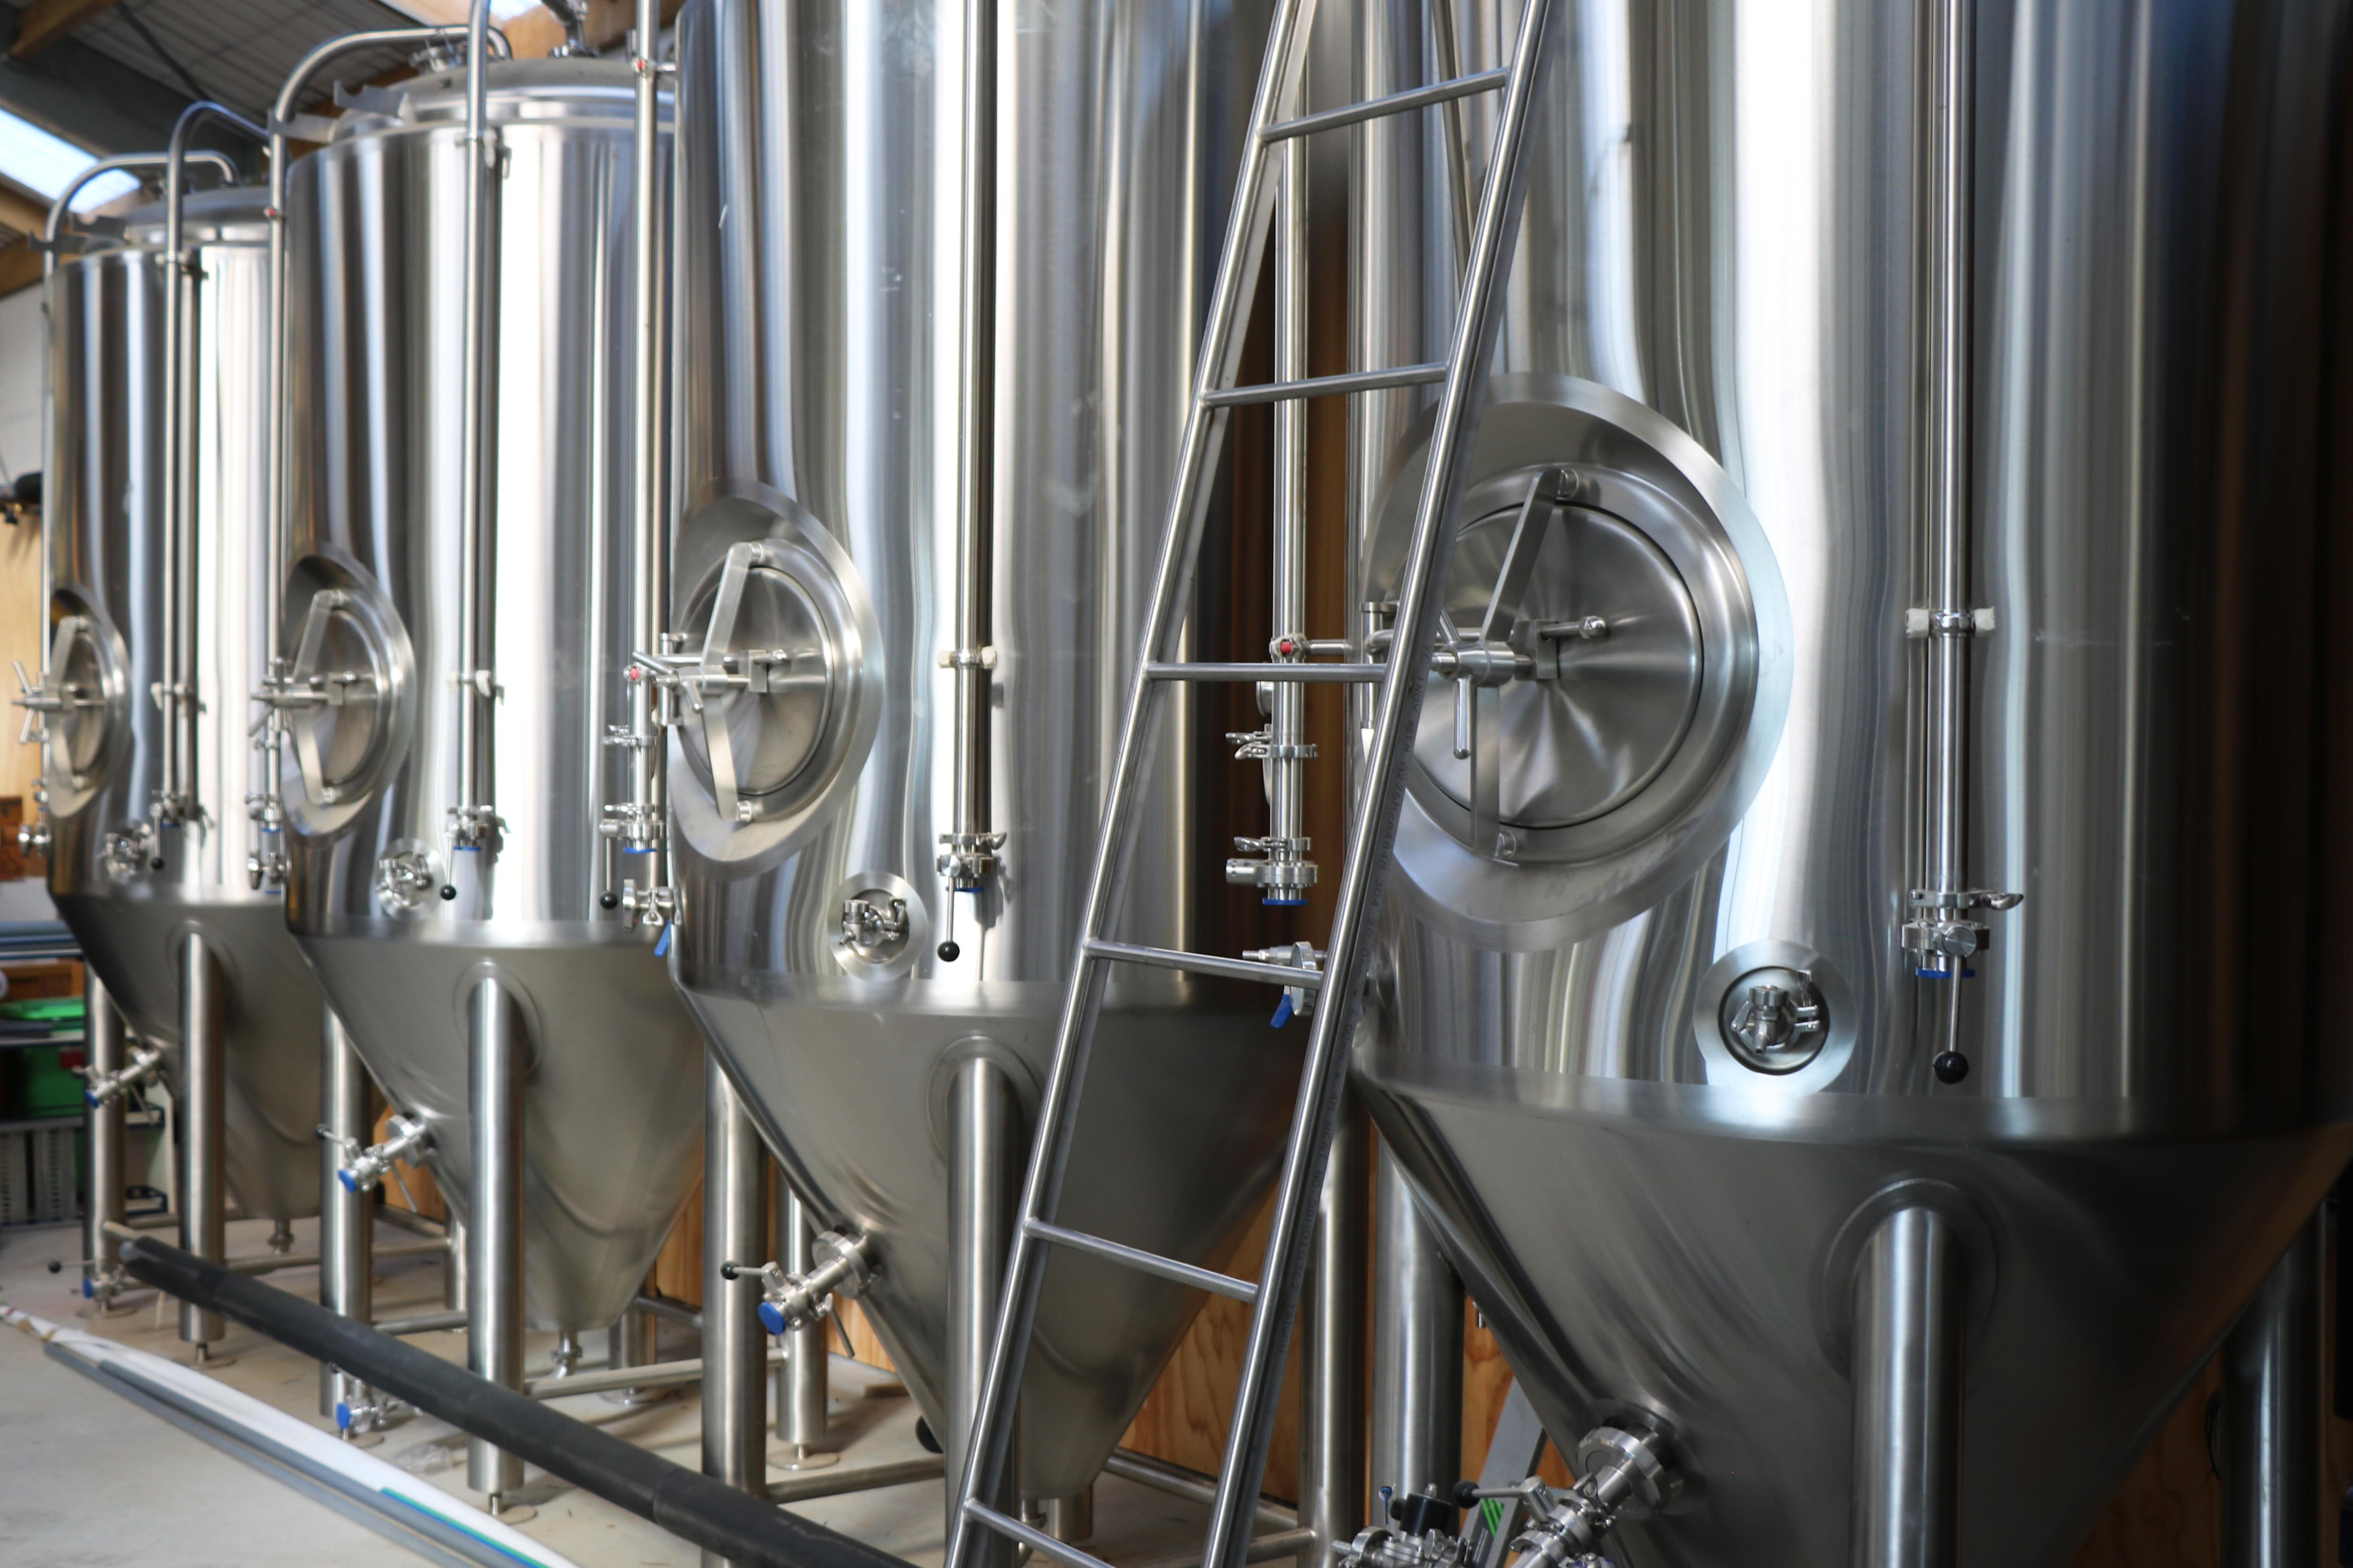 The height of a clearspan is essential for this brewery production